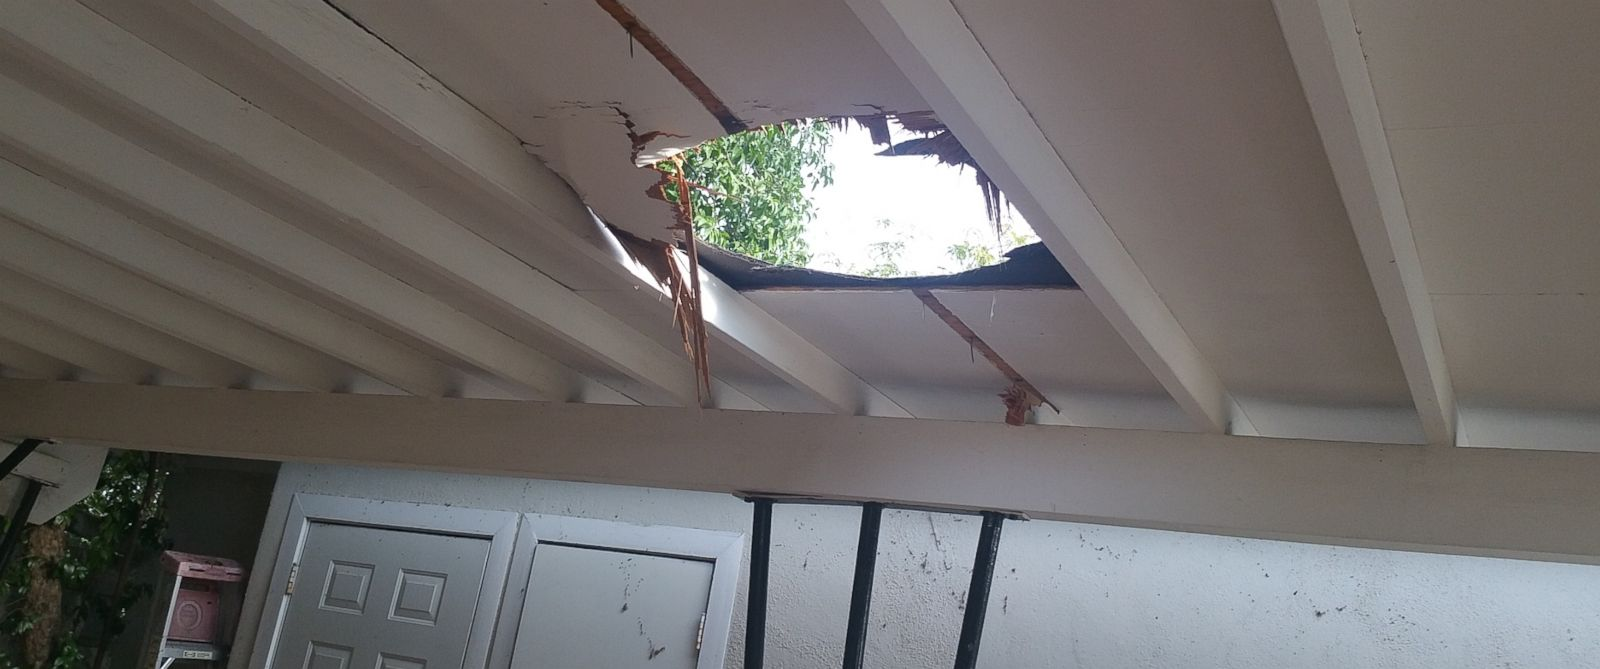 PHOTO: A 23-pound package of marijuana crashed through the roof of a carport at a home in Nogales, Ariz. on Sept. 8, 2015.